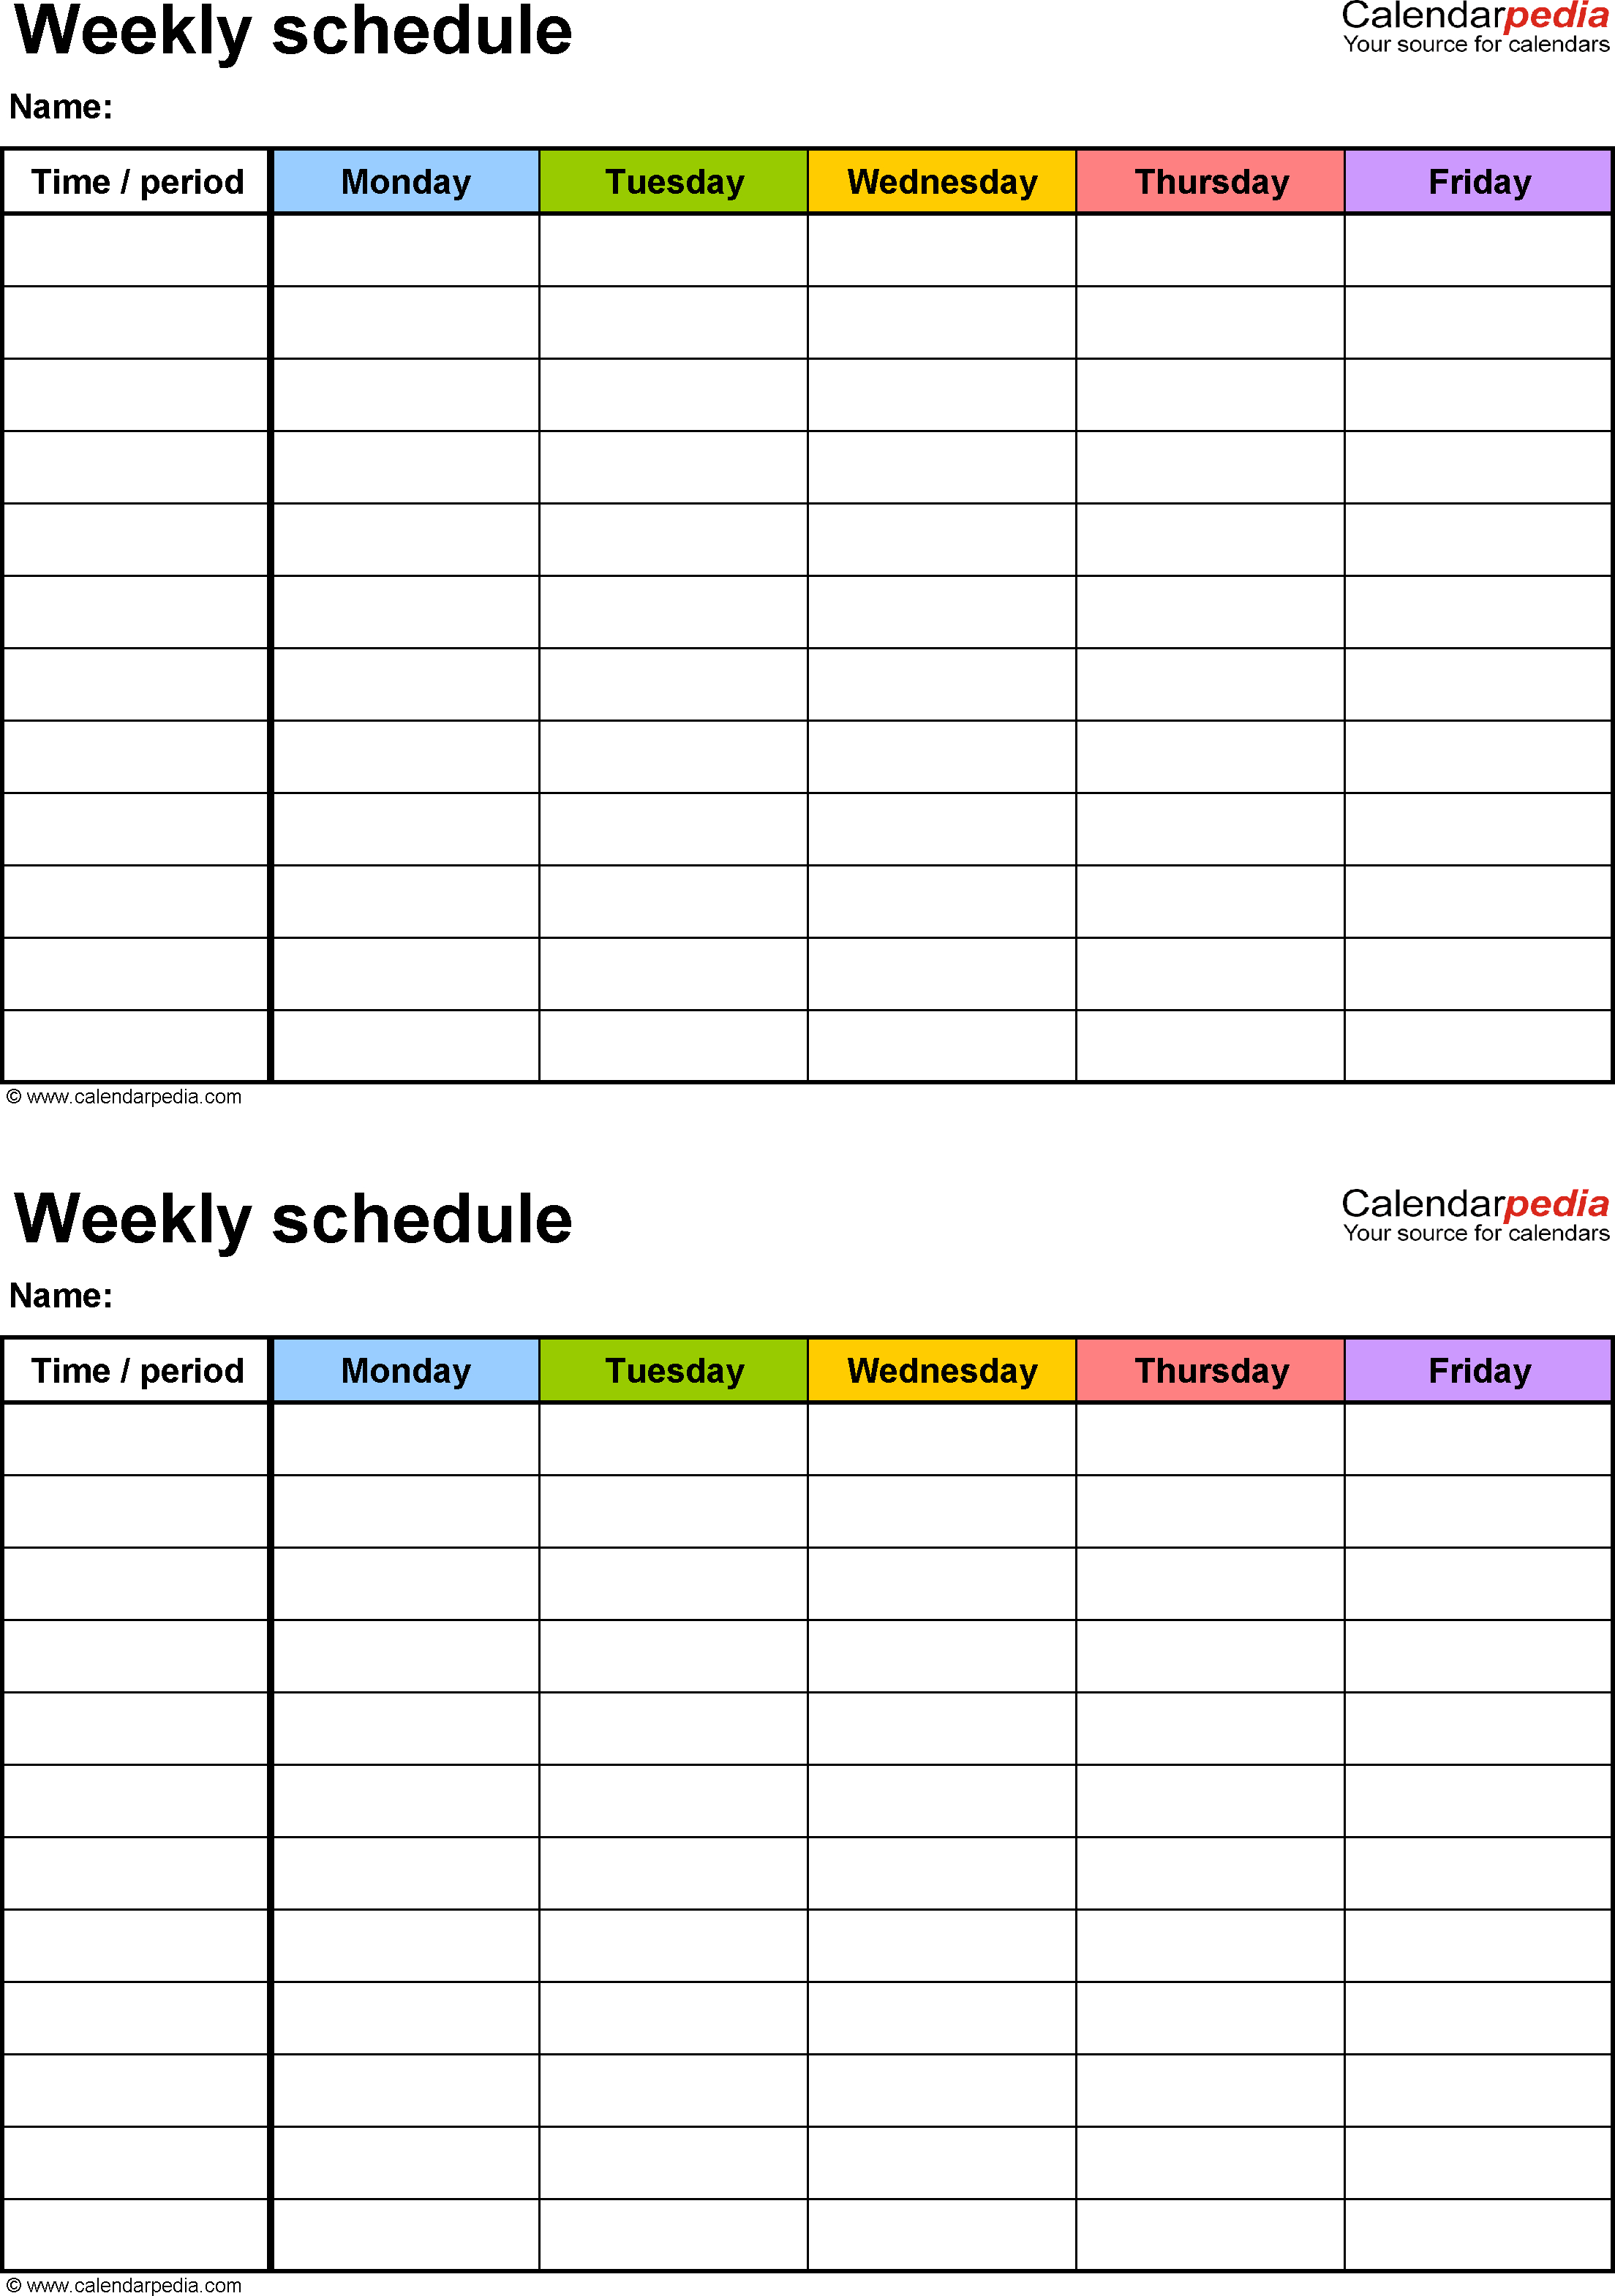 Free Weekly Schedule Templates For Word  18 Templates regarding Printable Weekly Calendar Monday Through Friday